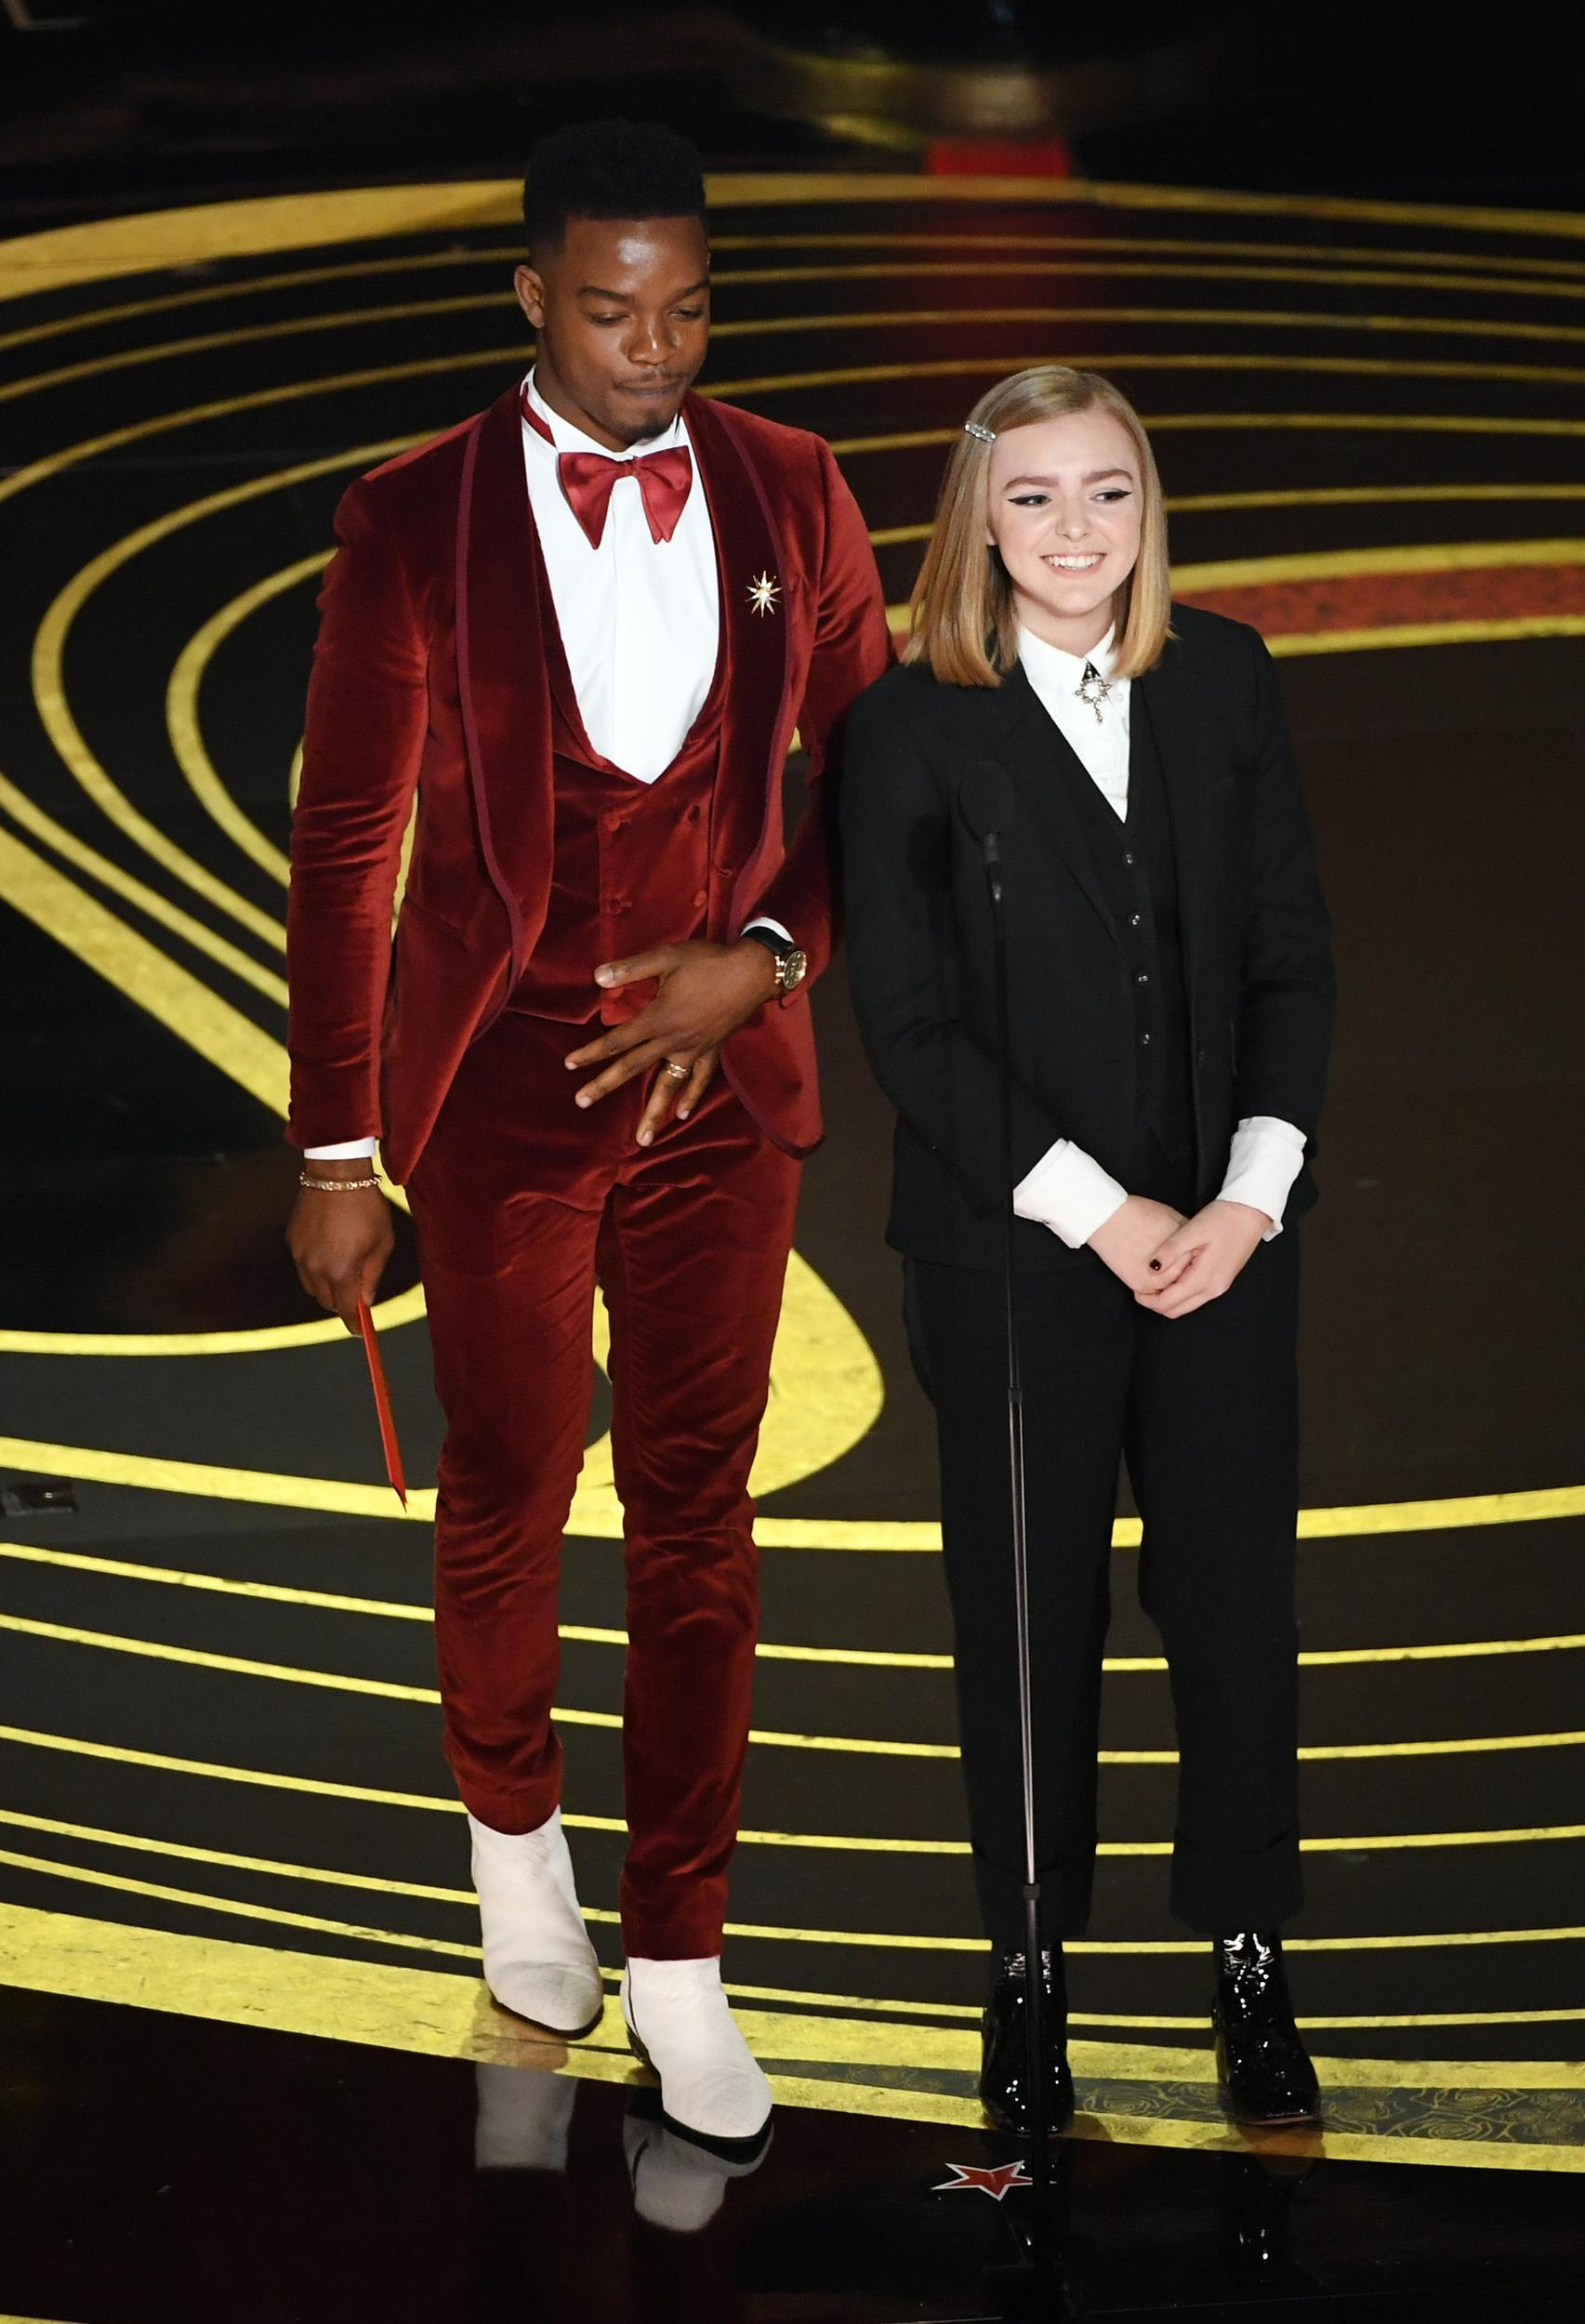 HOLLYWOOD, CALIFORNIA - FEBRUARY 24: (L-R) Stephan James and Elsie Fisher speak onstage during the 91st Annual Academy Awards at Dolby Theatre on February 24, 2019 in Hollywood, California. (Photo by Kevin Winter/Getty Images)